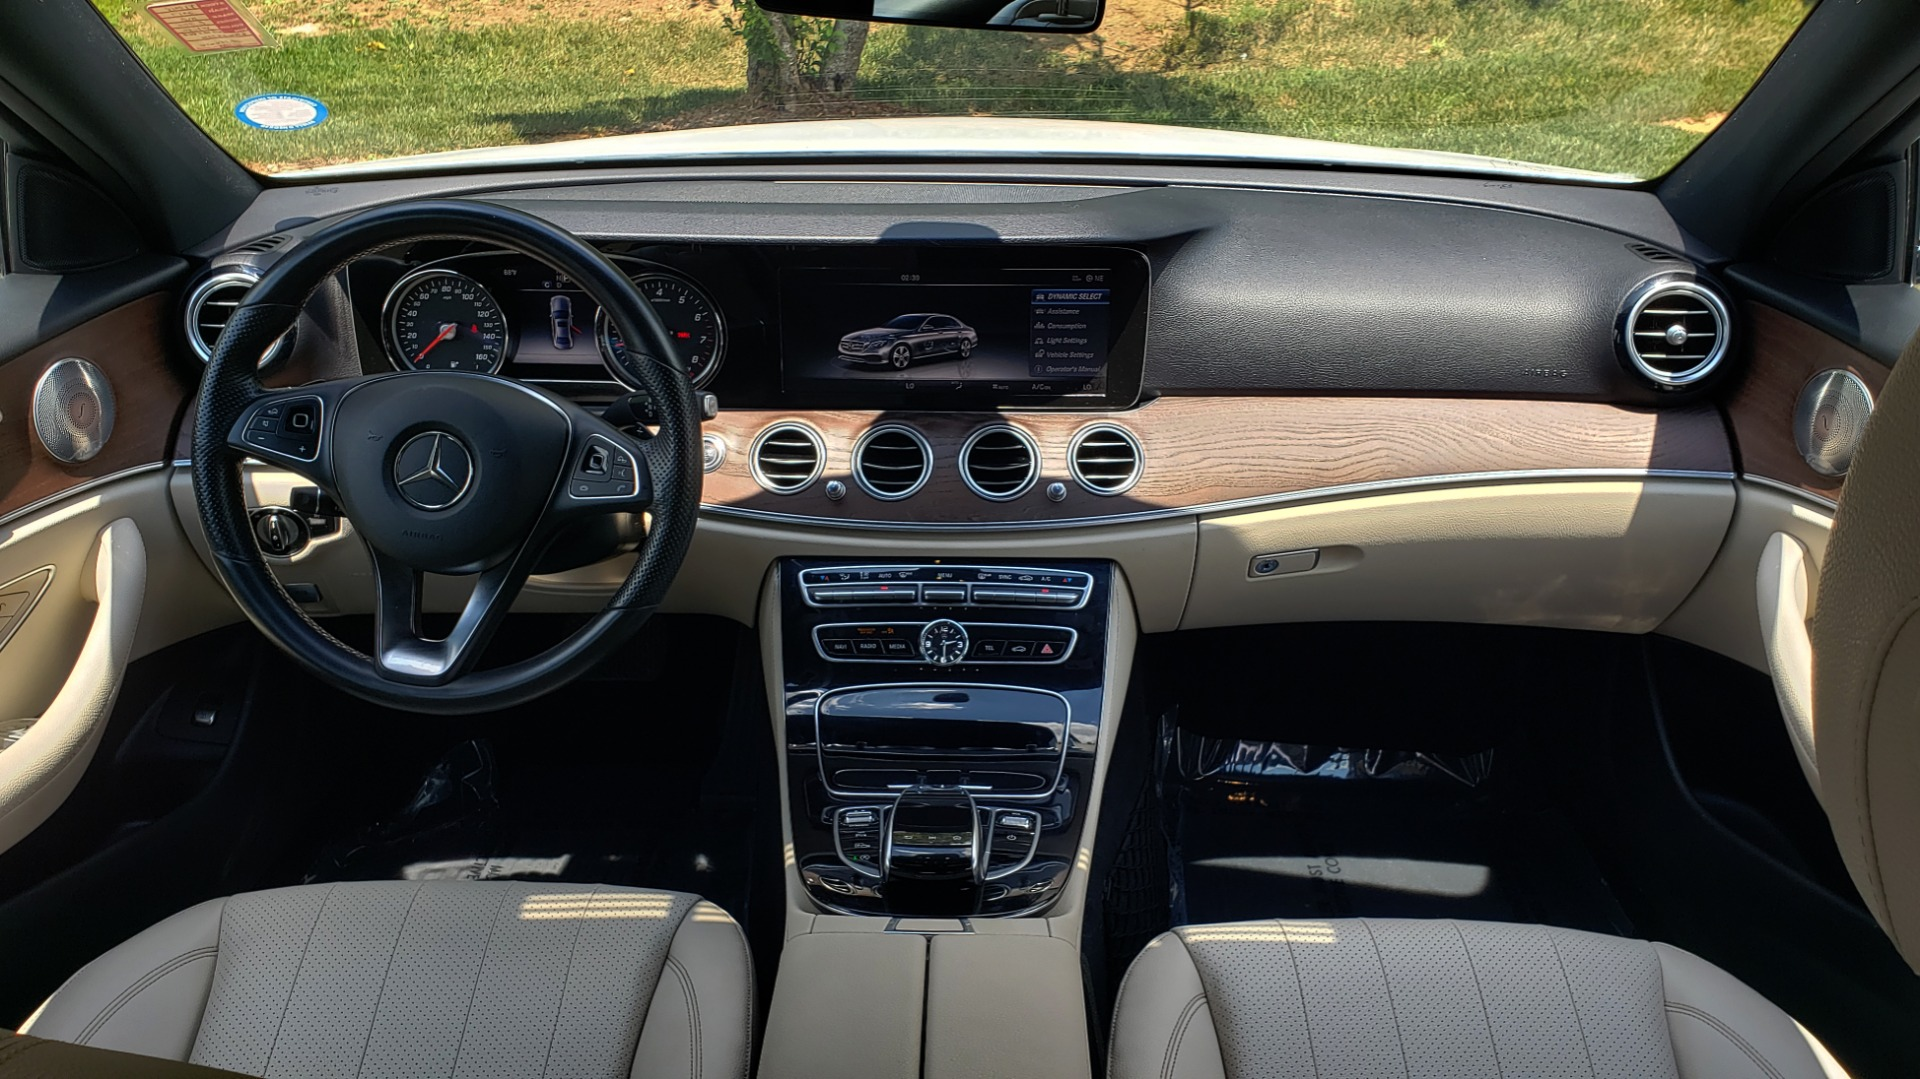 Used 2017 Mercedes-Benz E-CLASS E 300 PREMIUM / SPORT / NAV / SUNROOF / HTD STS / BSM / REARVIEW for sale $27,995 at Formula Imports in Charlotte NC 28227 74